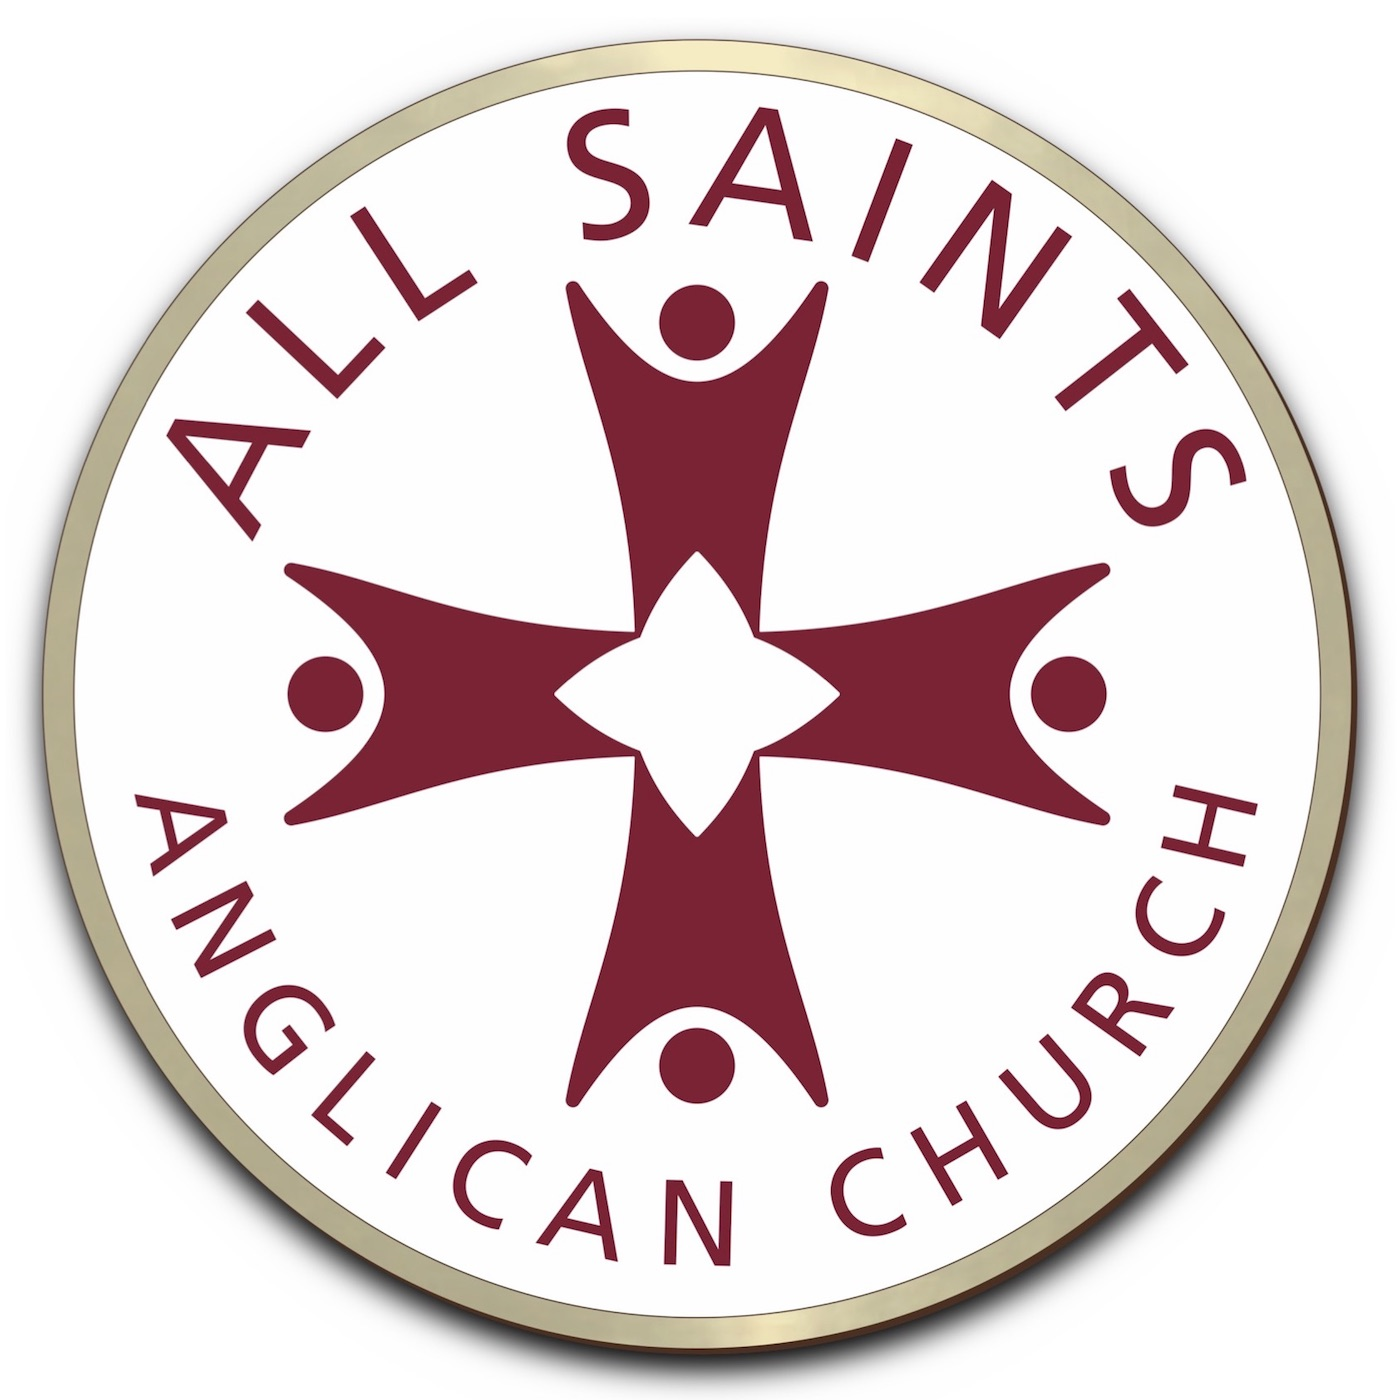 Sermons from All Saints Anglican Church, Springfield, MO